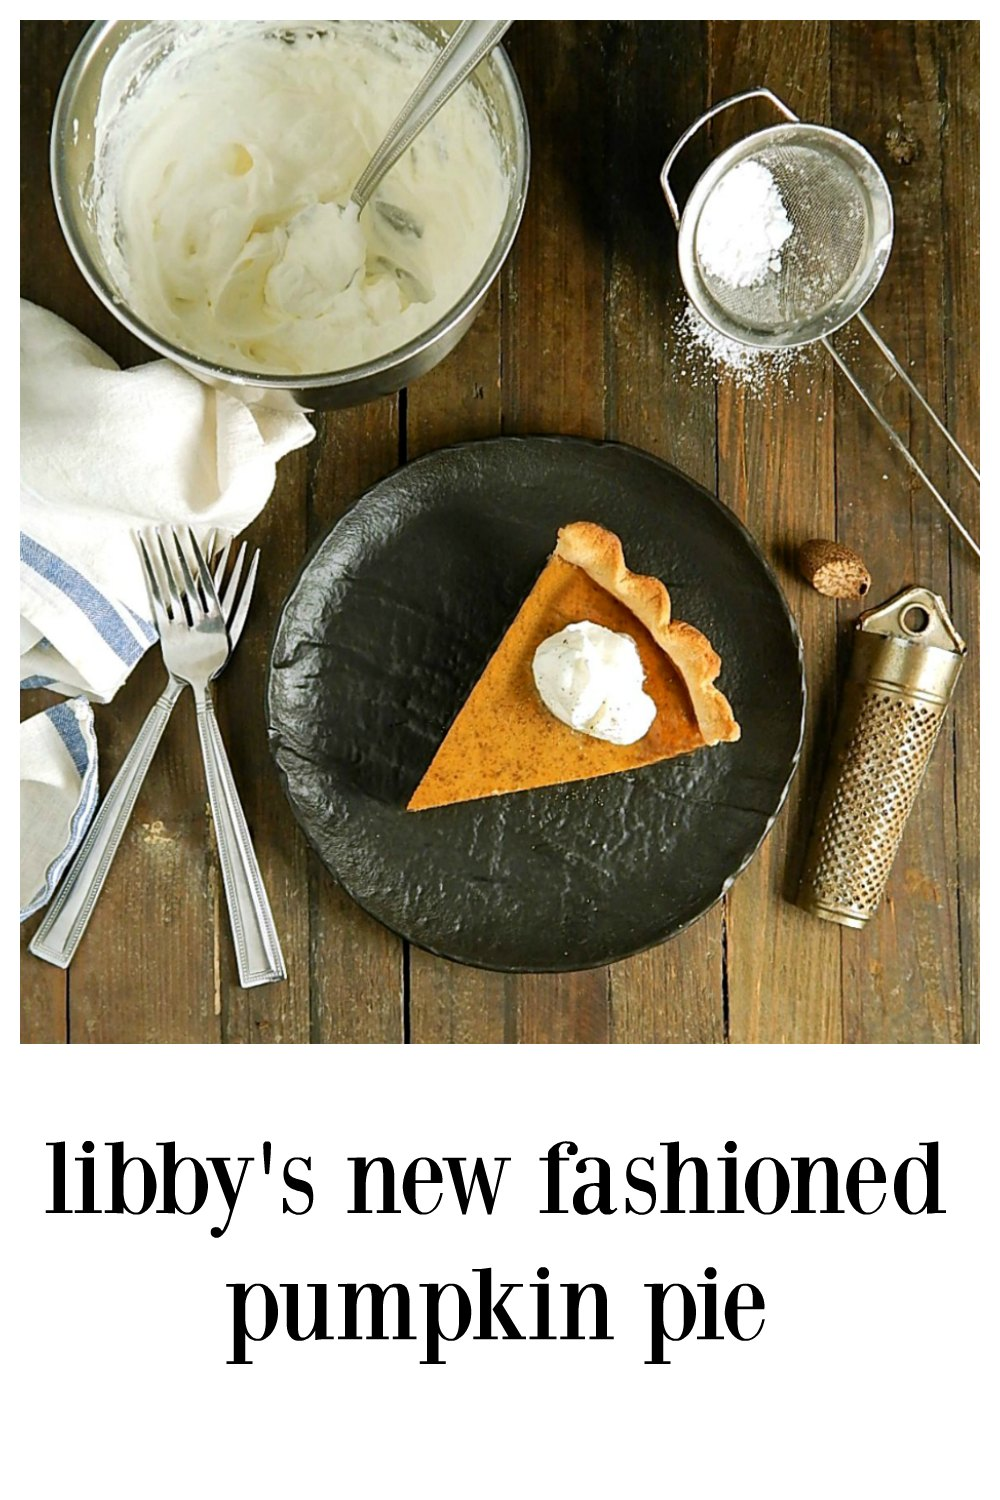 Libby's New Fashioned Pumpkin Pie is the NEW Back of the Can Recipe. Super Easy! Includes a comparison to the Old Famous Pumpkin Pie. #PumpkinPie #LibbysPumpkinPie #LibbysNewPumpkinPie #LibbysBackofCanPumpkinPie #LibbysNewFashionedPumpkinPie